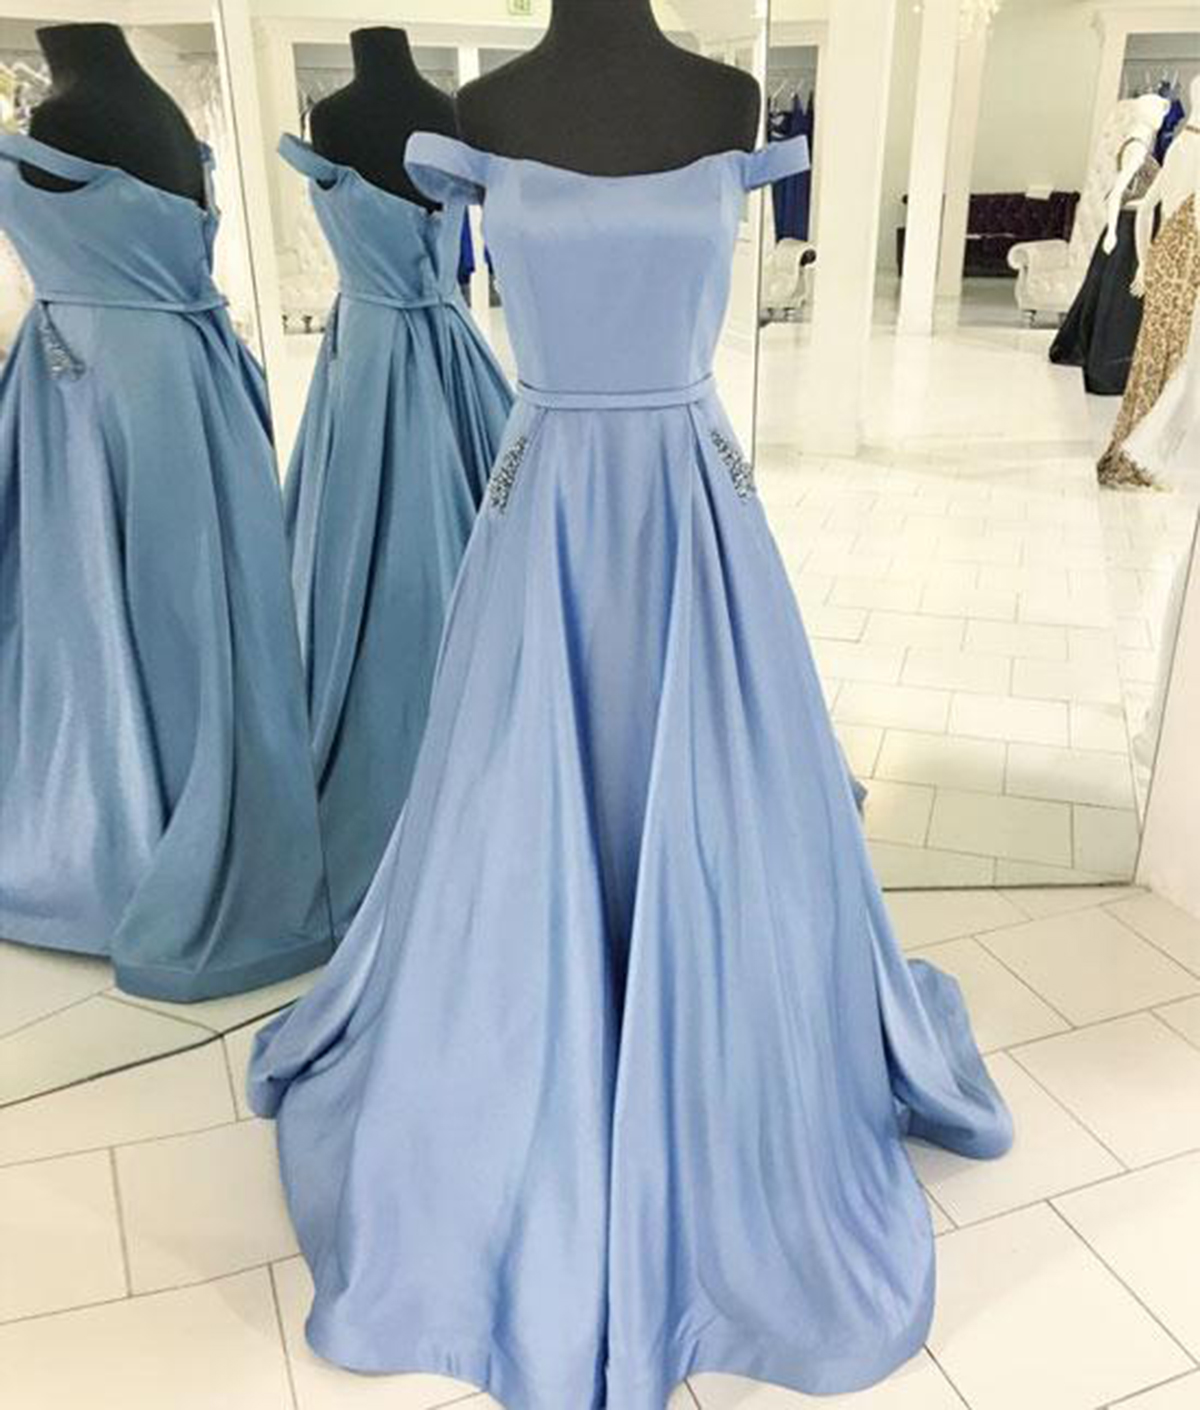 310c5bfb3b80 Simple Off Shoulder Light Blue Satin Prom Dress With Beaded Pockets ...